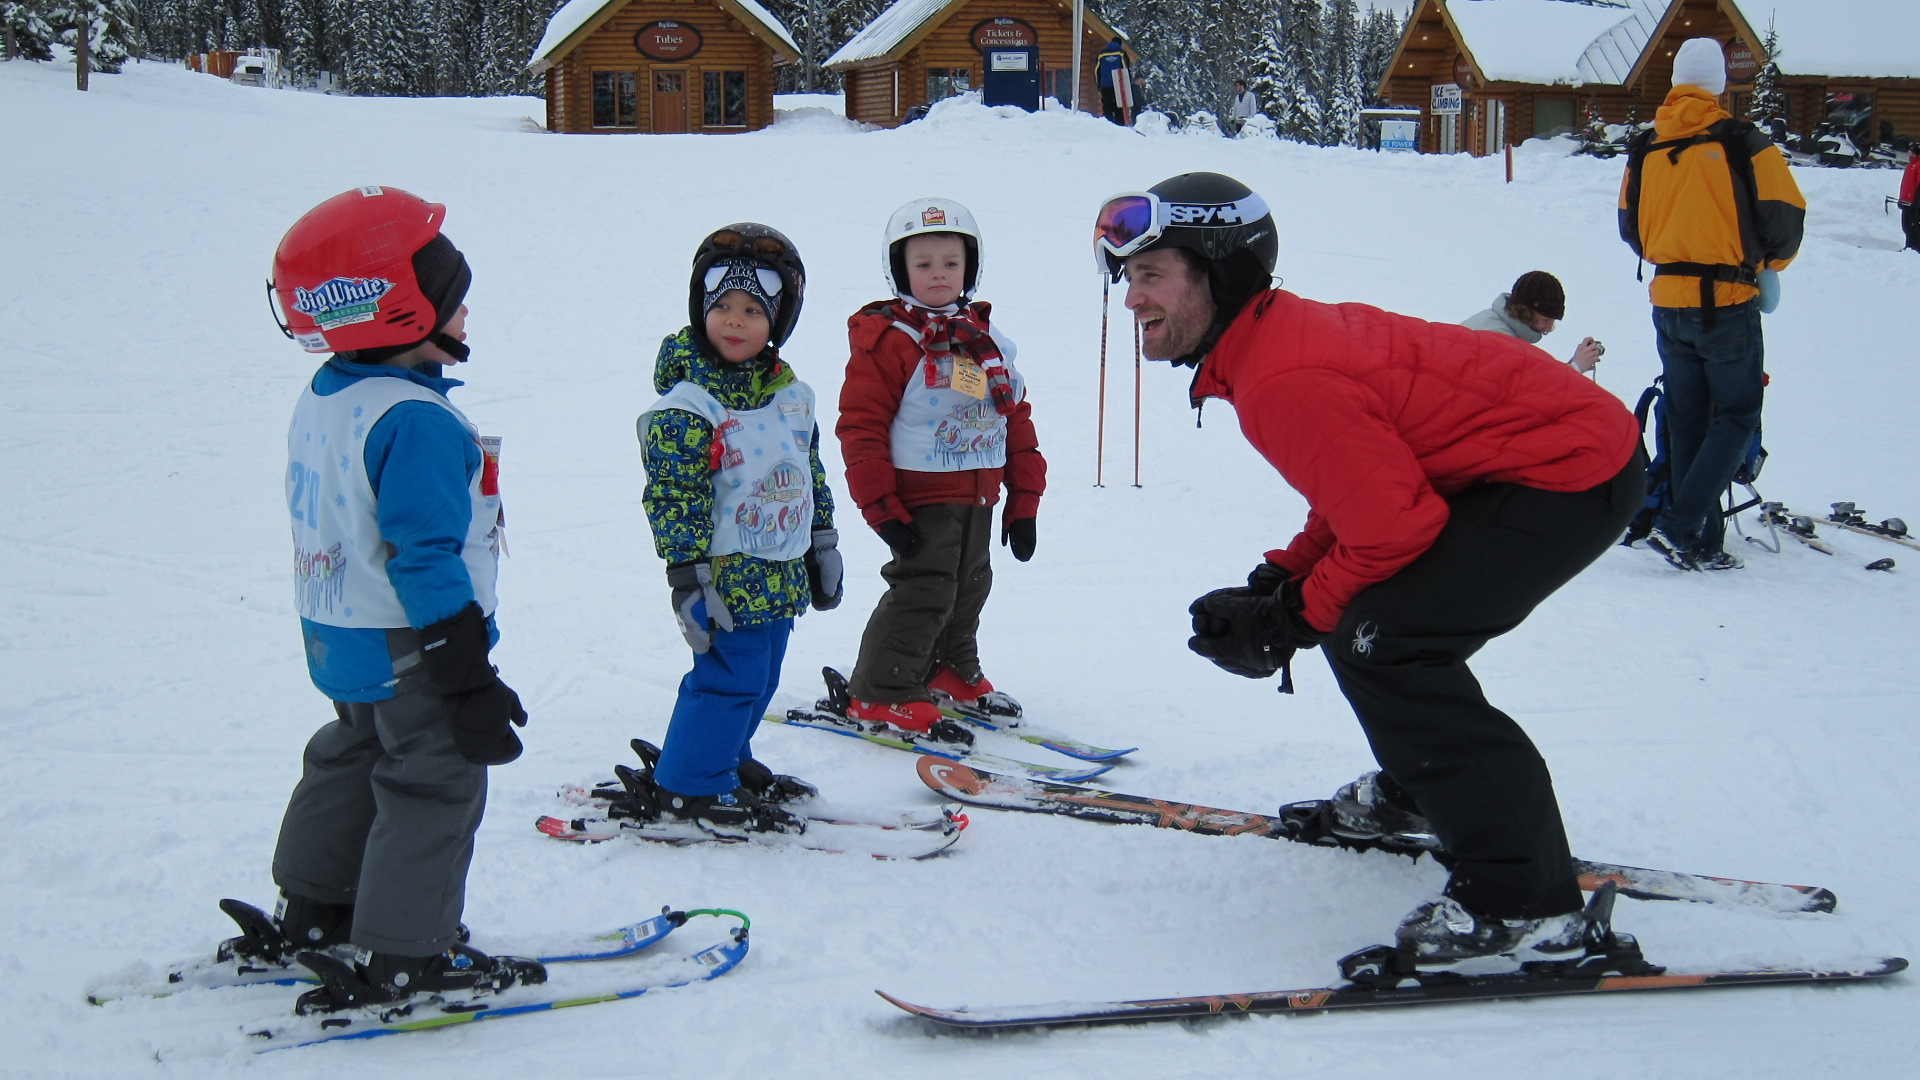 Little ones learn to ski at Big White